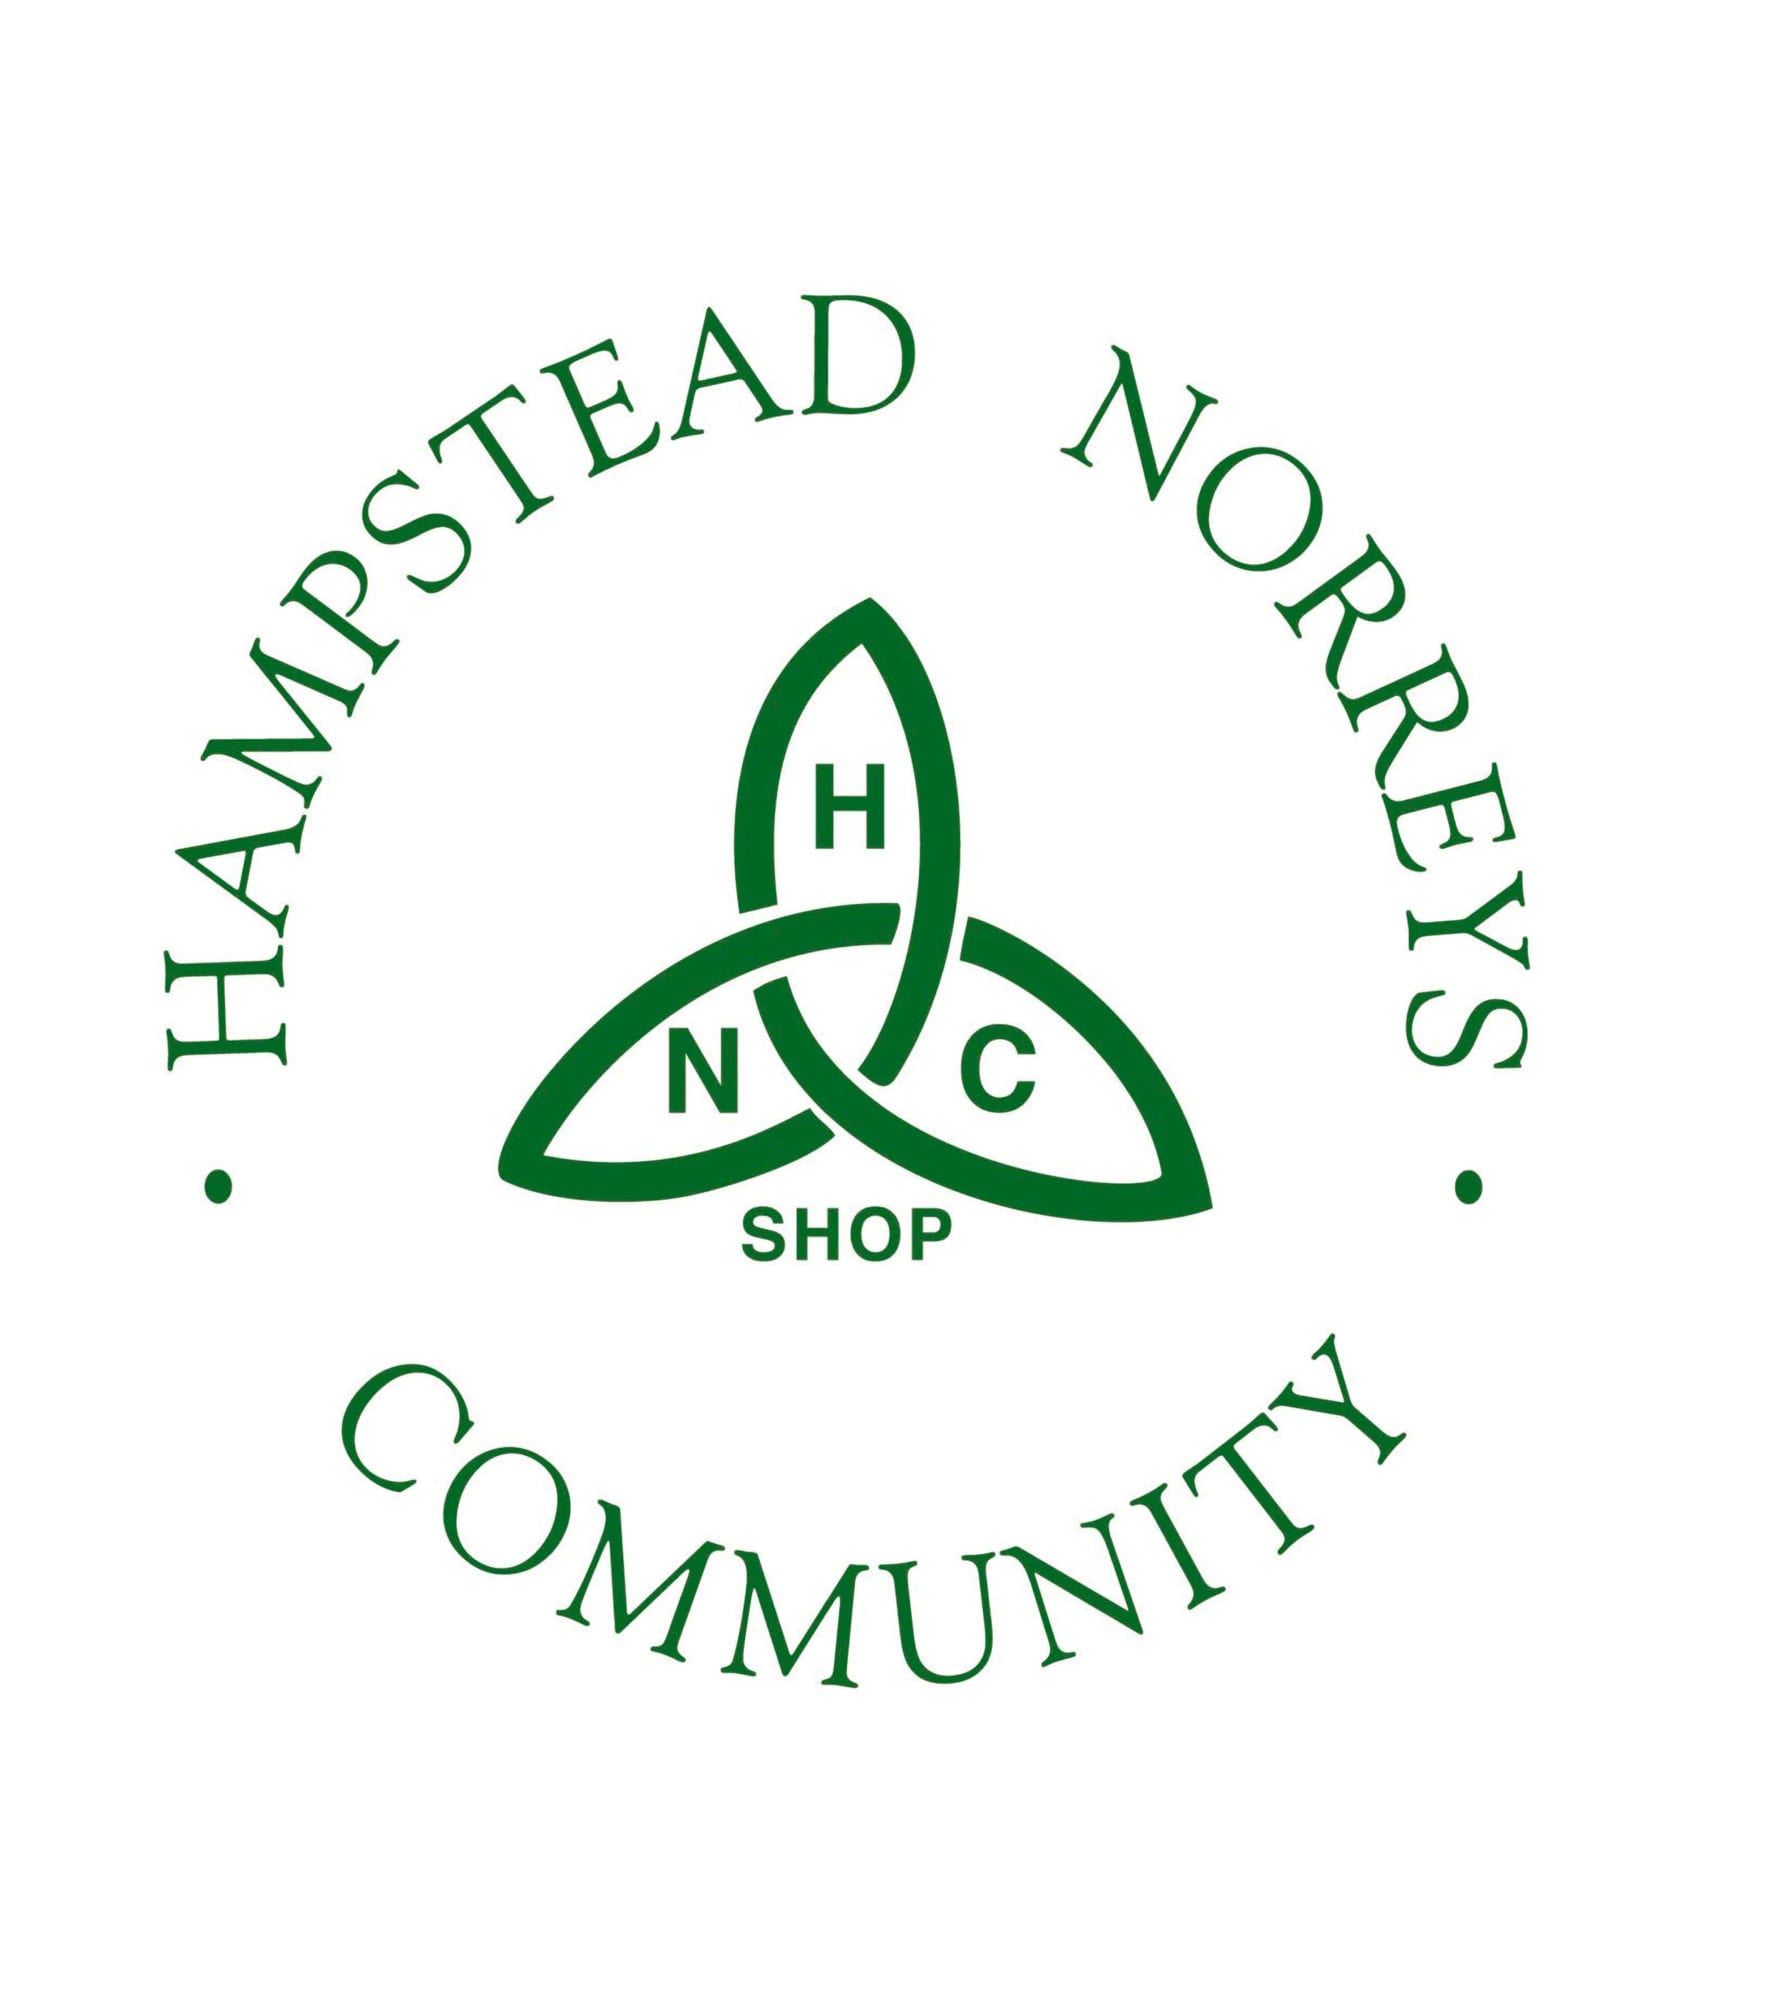 Hampstead Norreys Community Shop